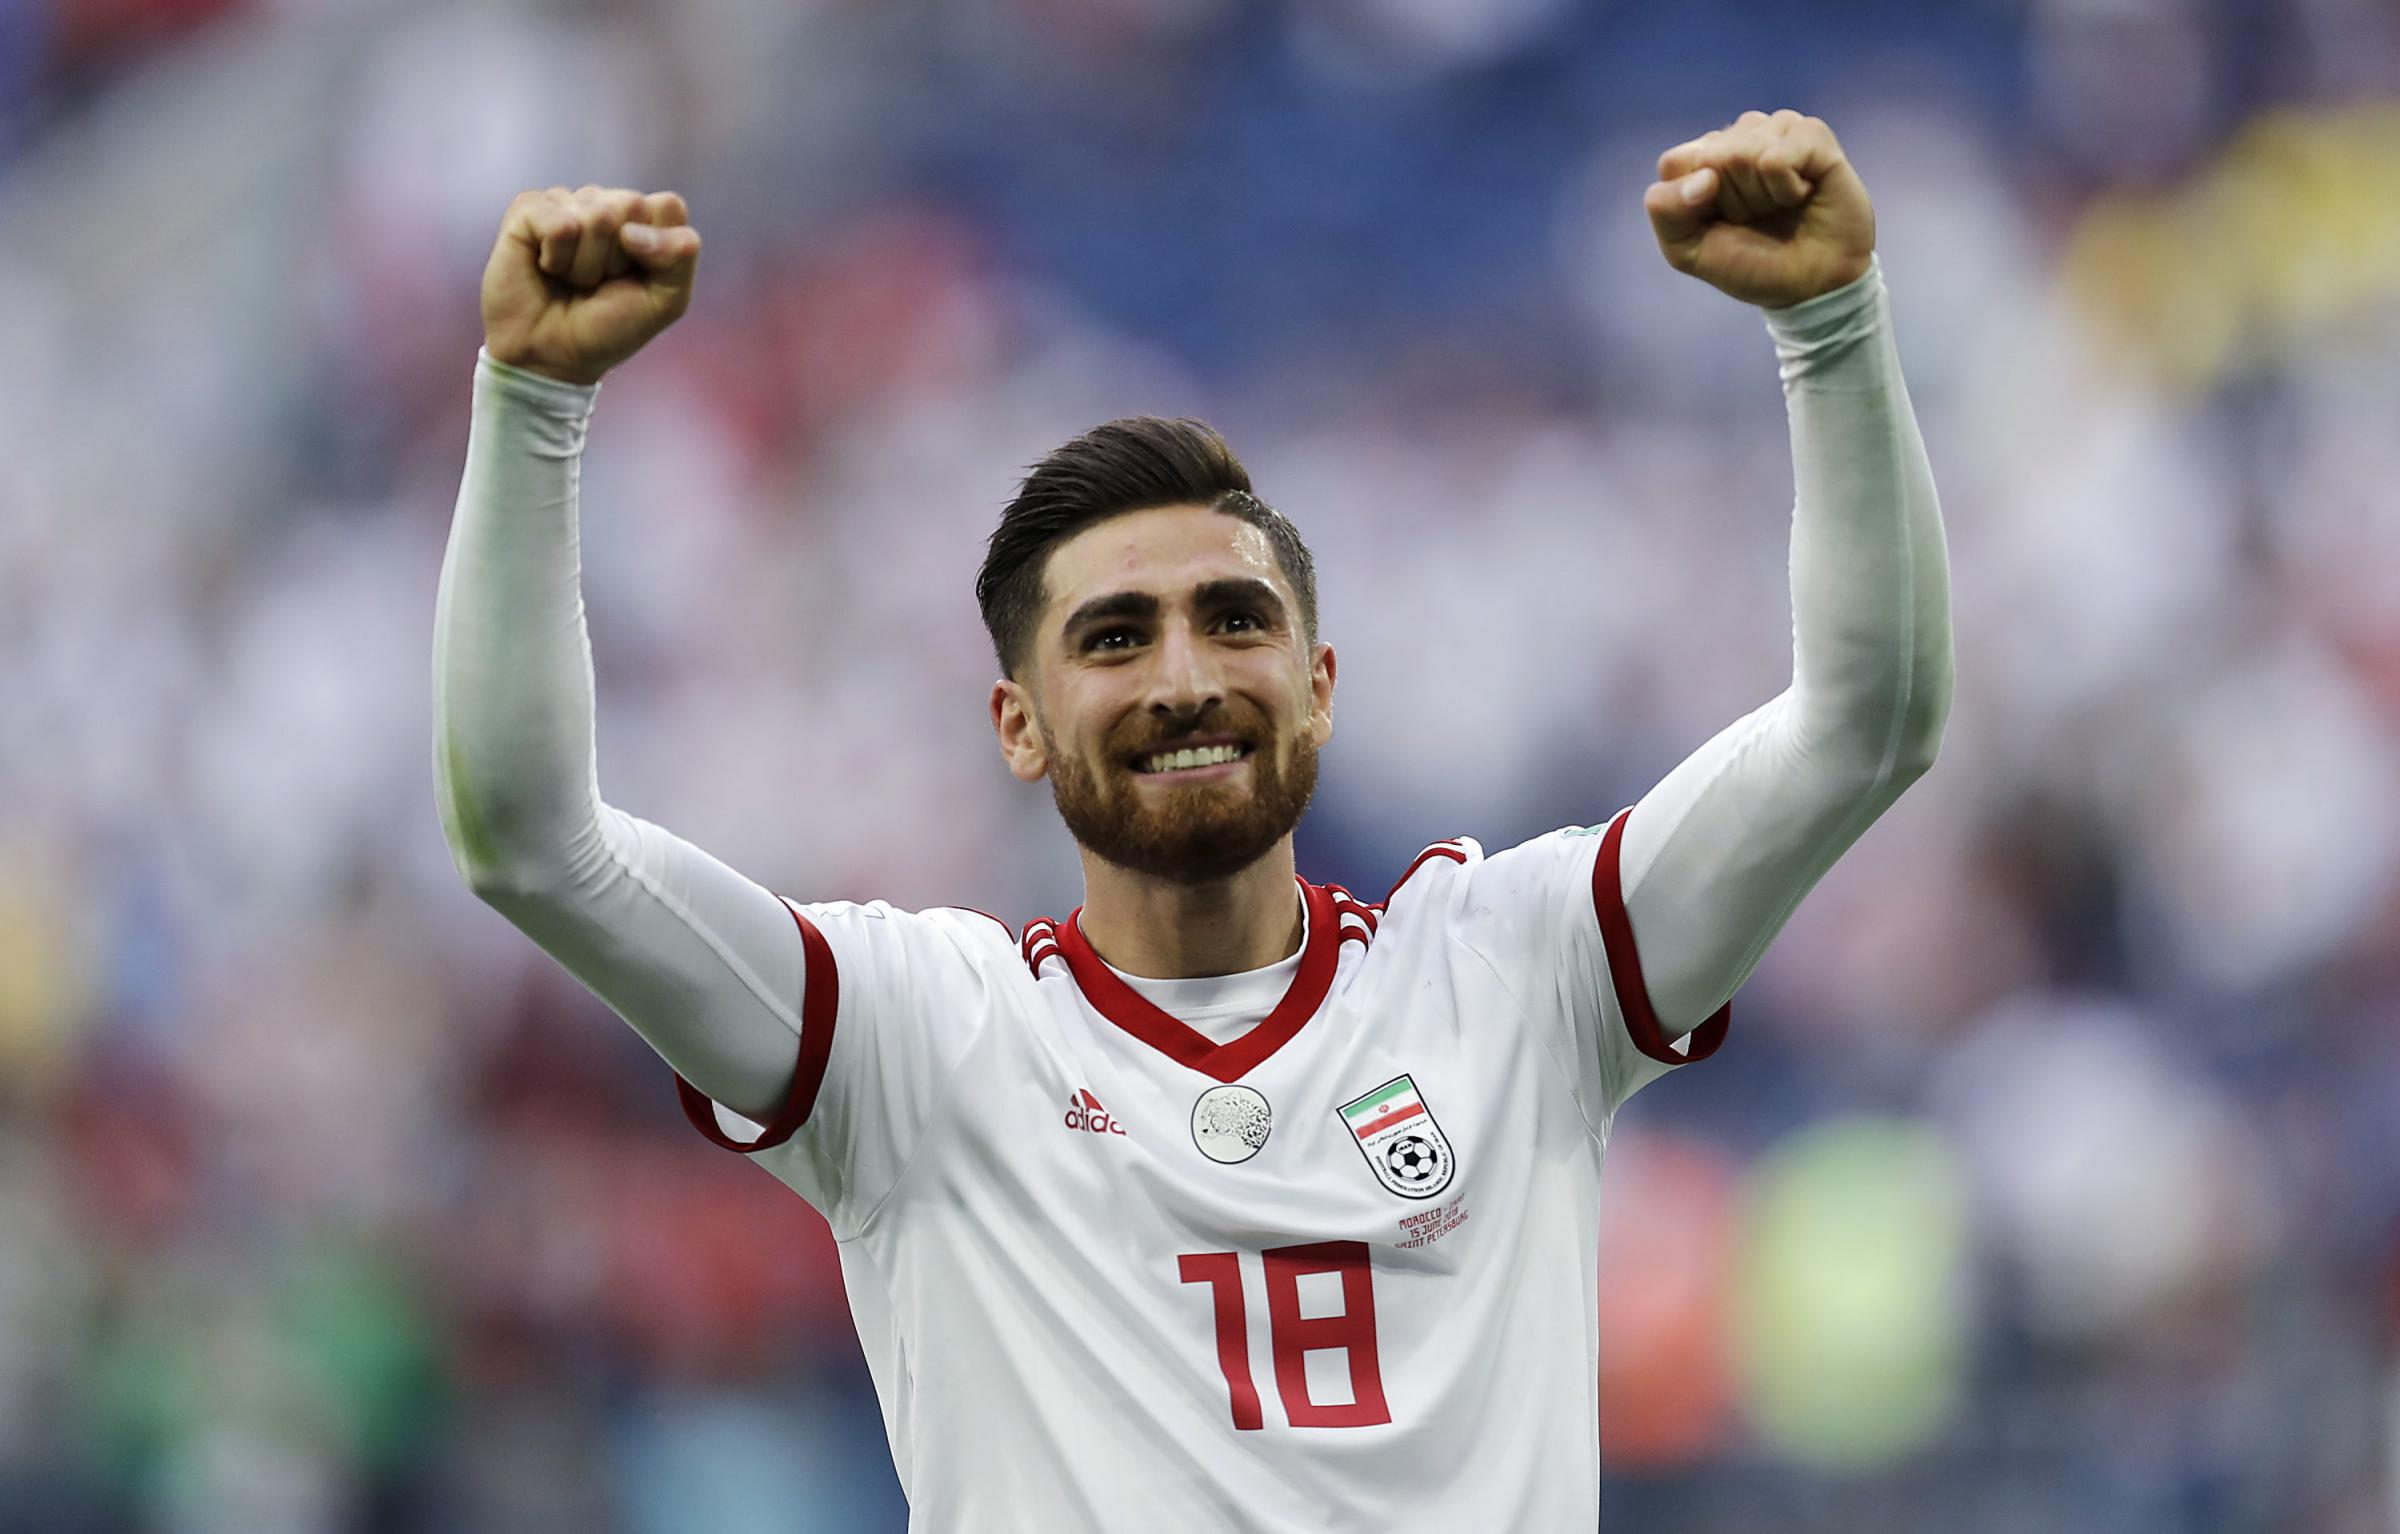 Iran's Alireza Jahanbakhsh has long been linked with a move to Albion